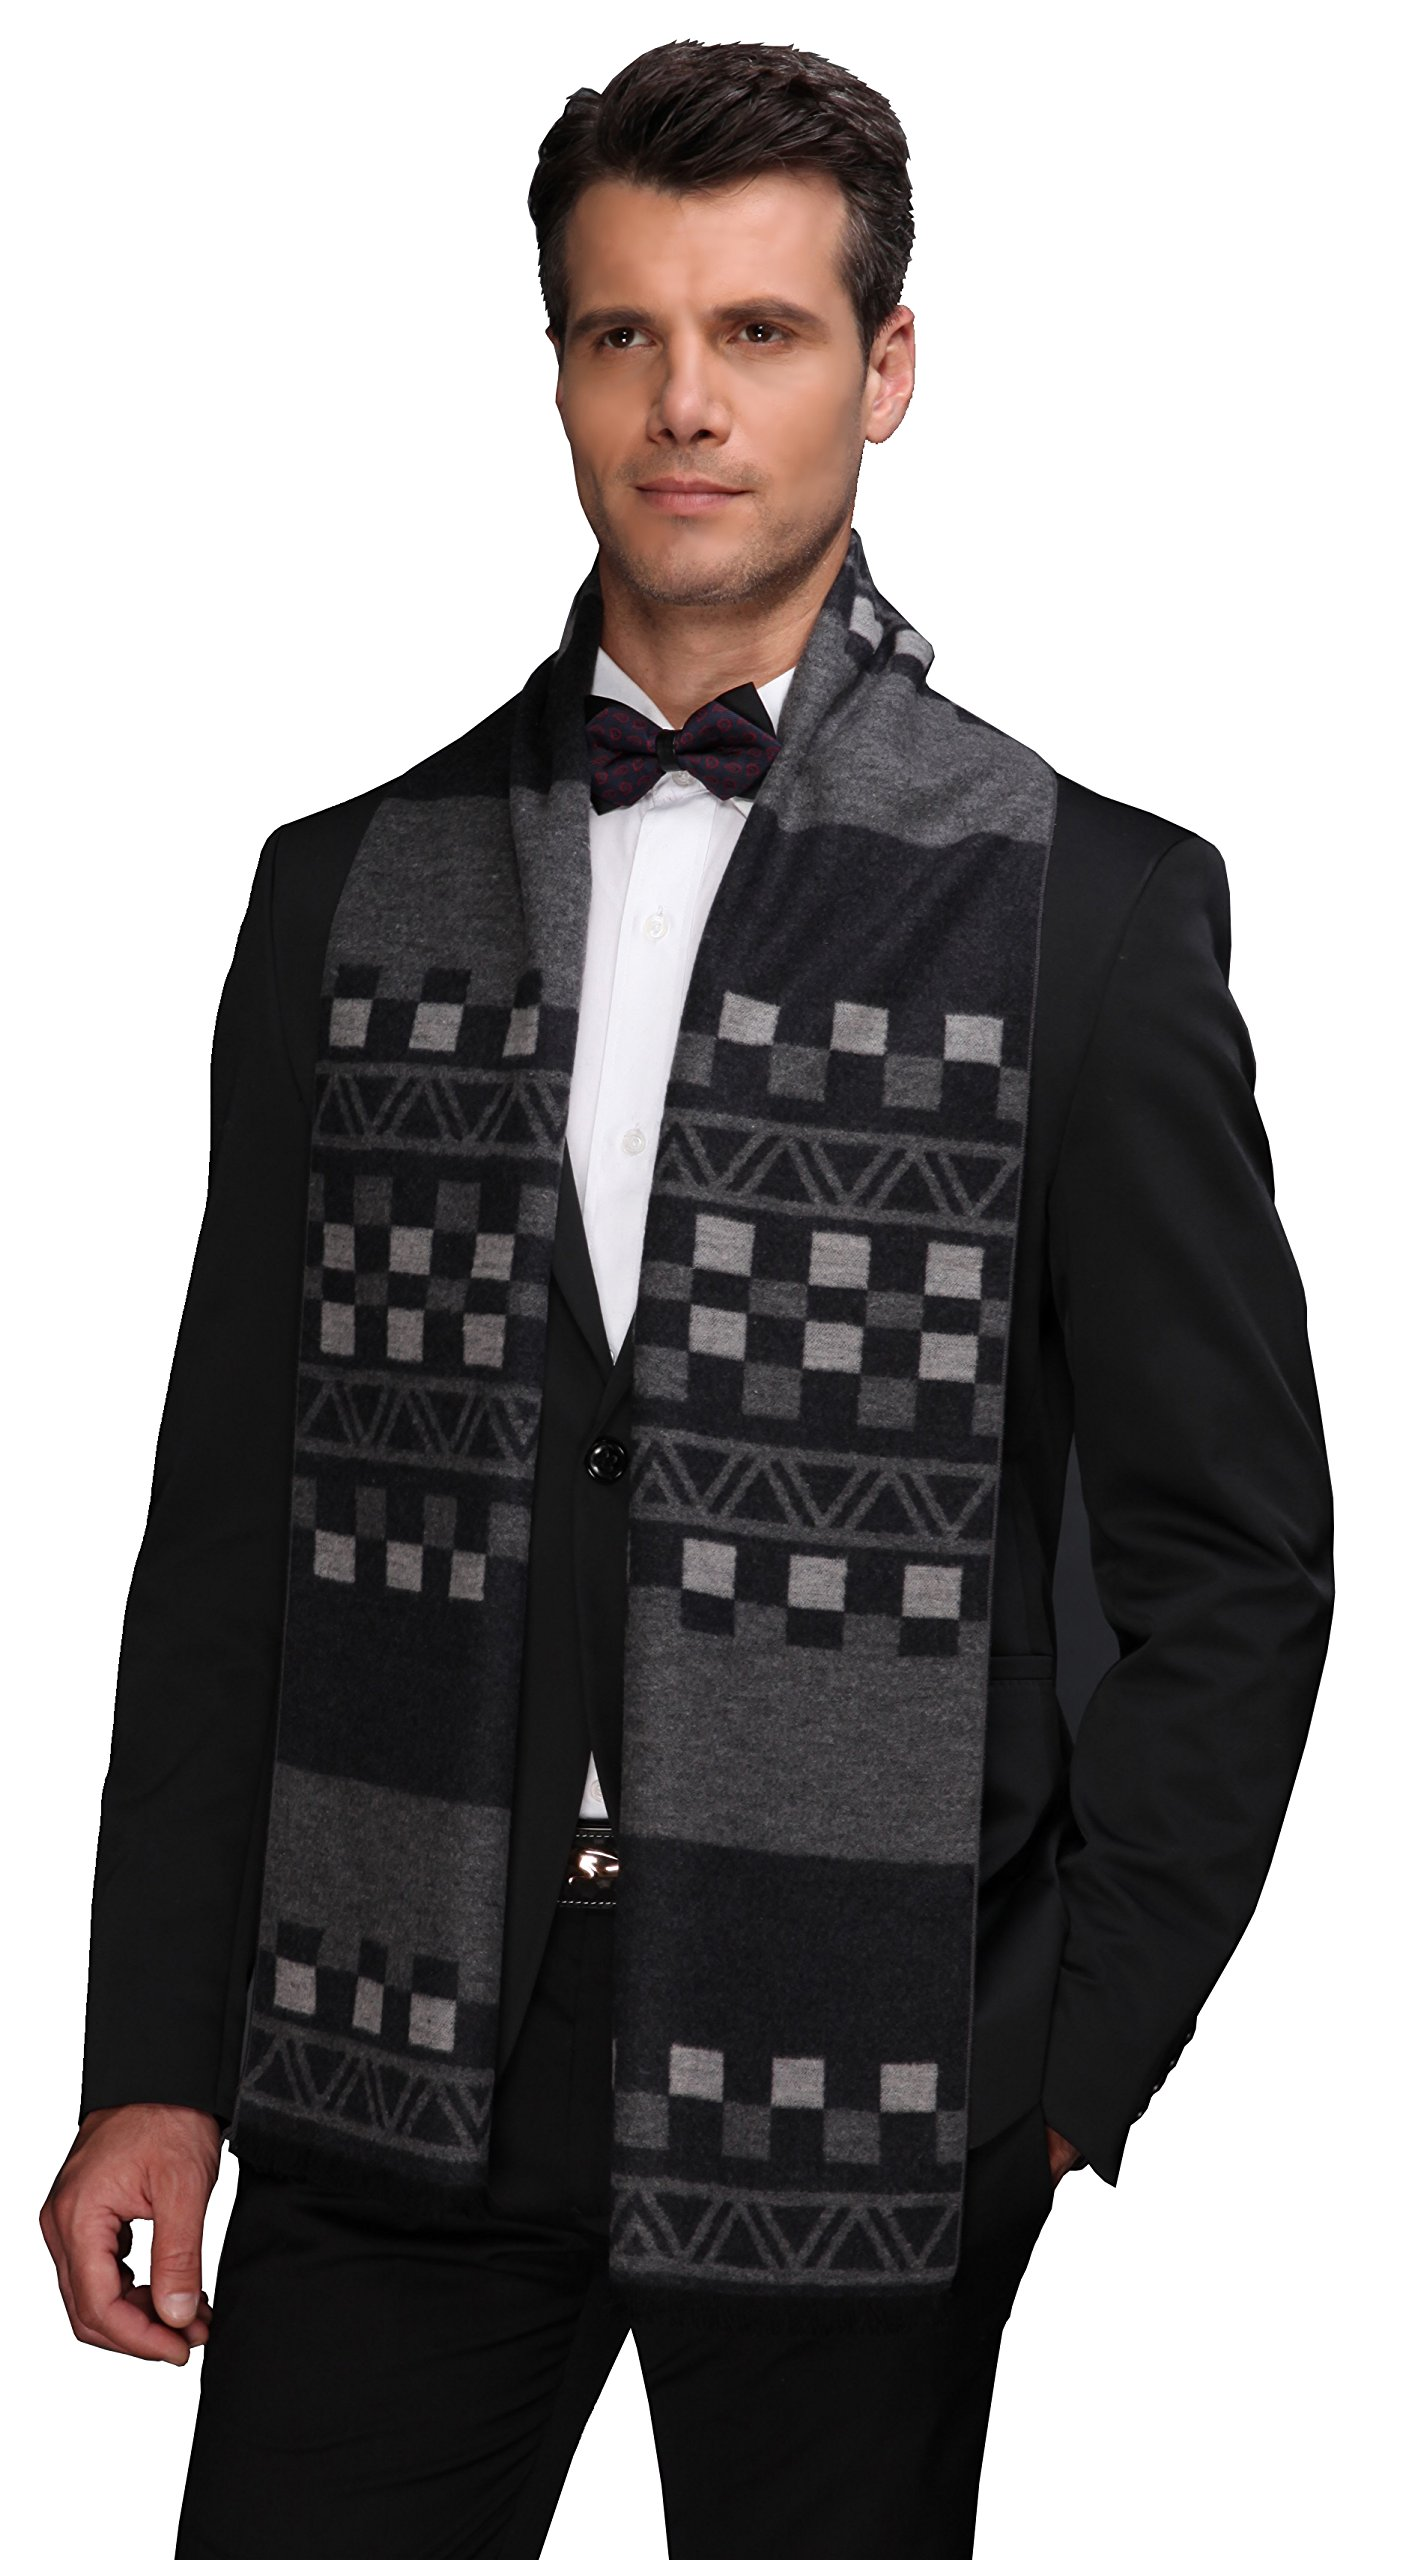 Ellettee Collections, 11'' x 71'' Mens 100% Brushed Silk Scarf, Luxury Fashion Perfect Thanksgiving Gift Neck Wrap Winter Accessory (BlackGray Plaid)